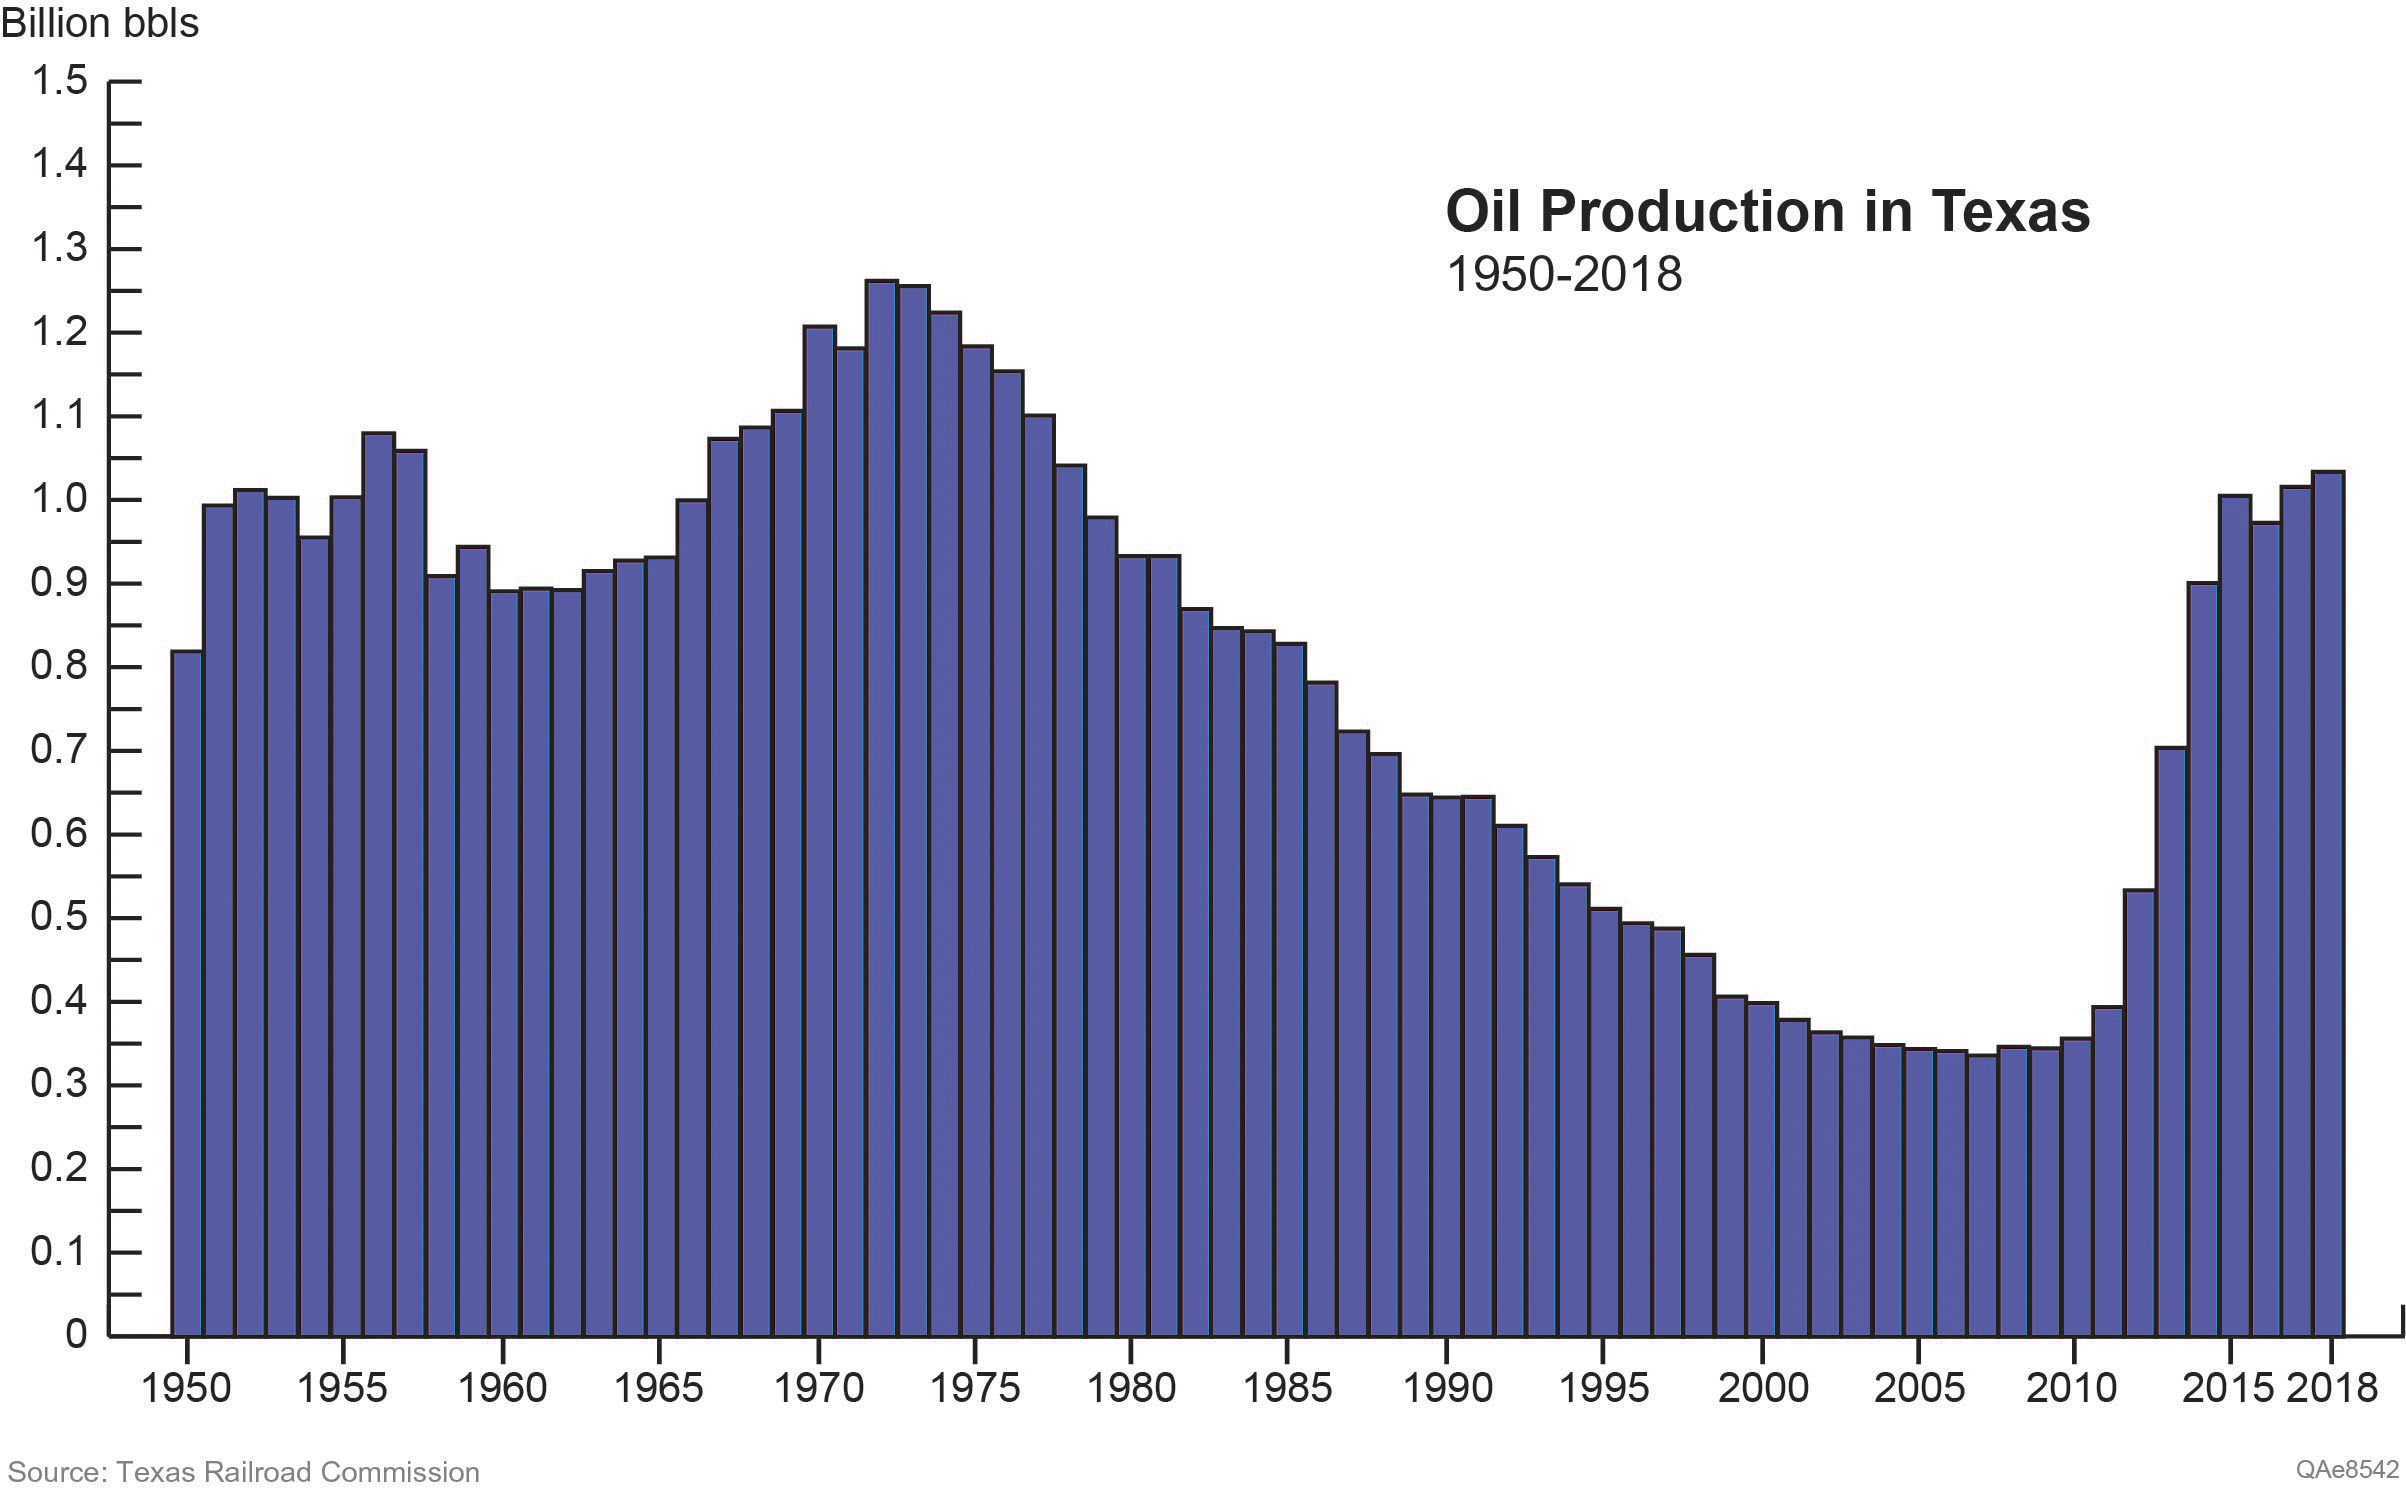 Oil Production in Texas